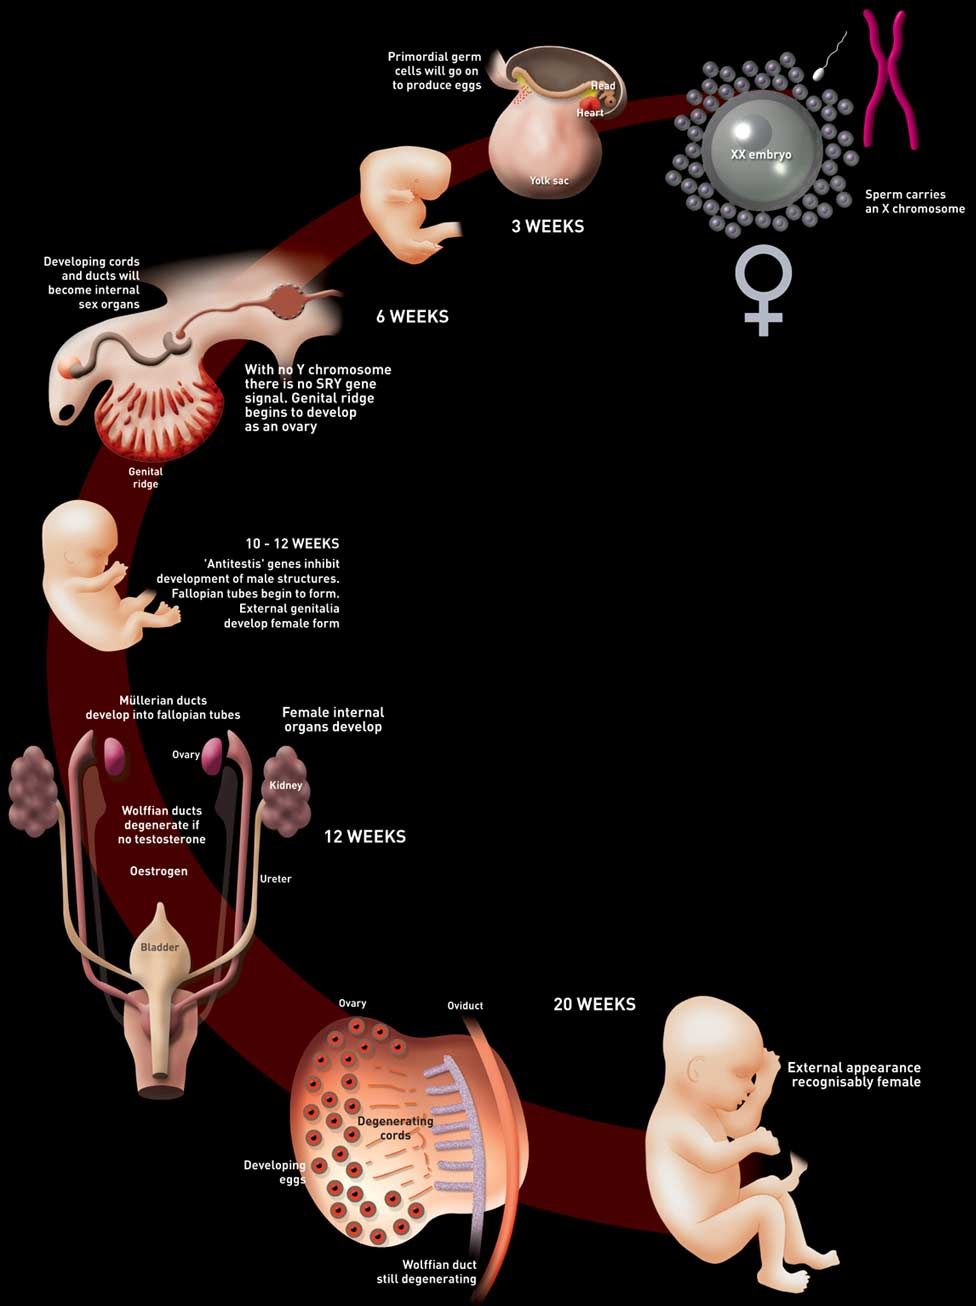 Sexual development of a female